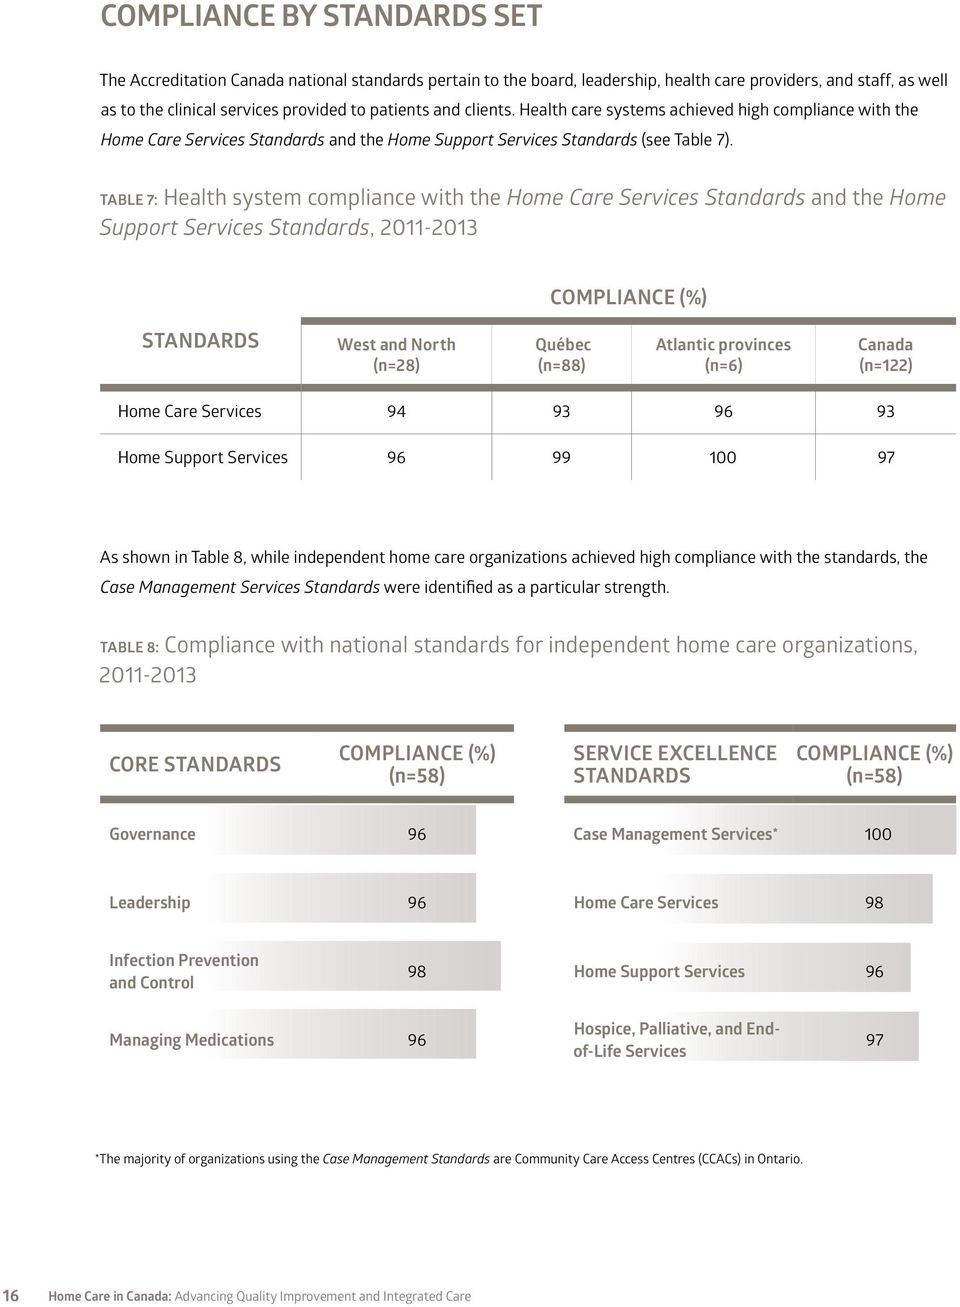 TABLE 7: Health system compliance with the Home Care Services Standards and the Home Support Services Standards, 2011-2013 COMPLIANCE (%) STANDARDS West and North (n=28) Québec (n=88) Atlantic